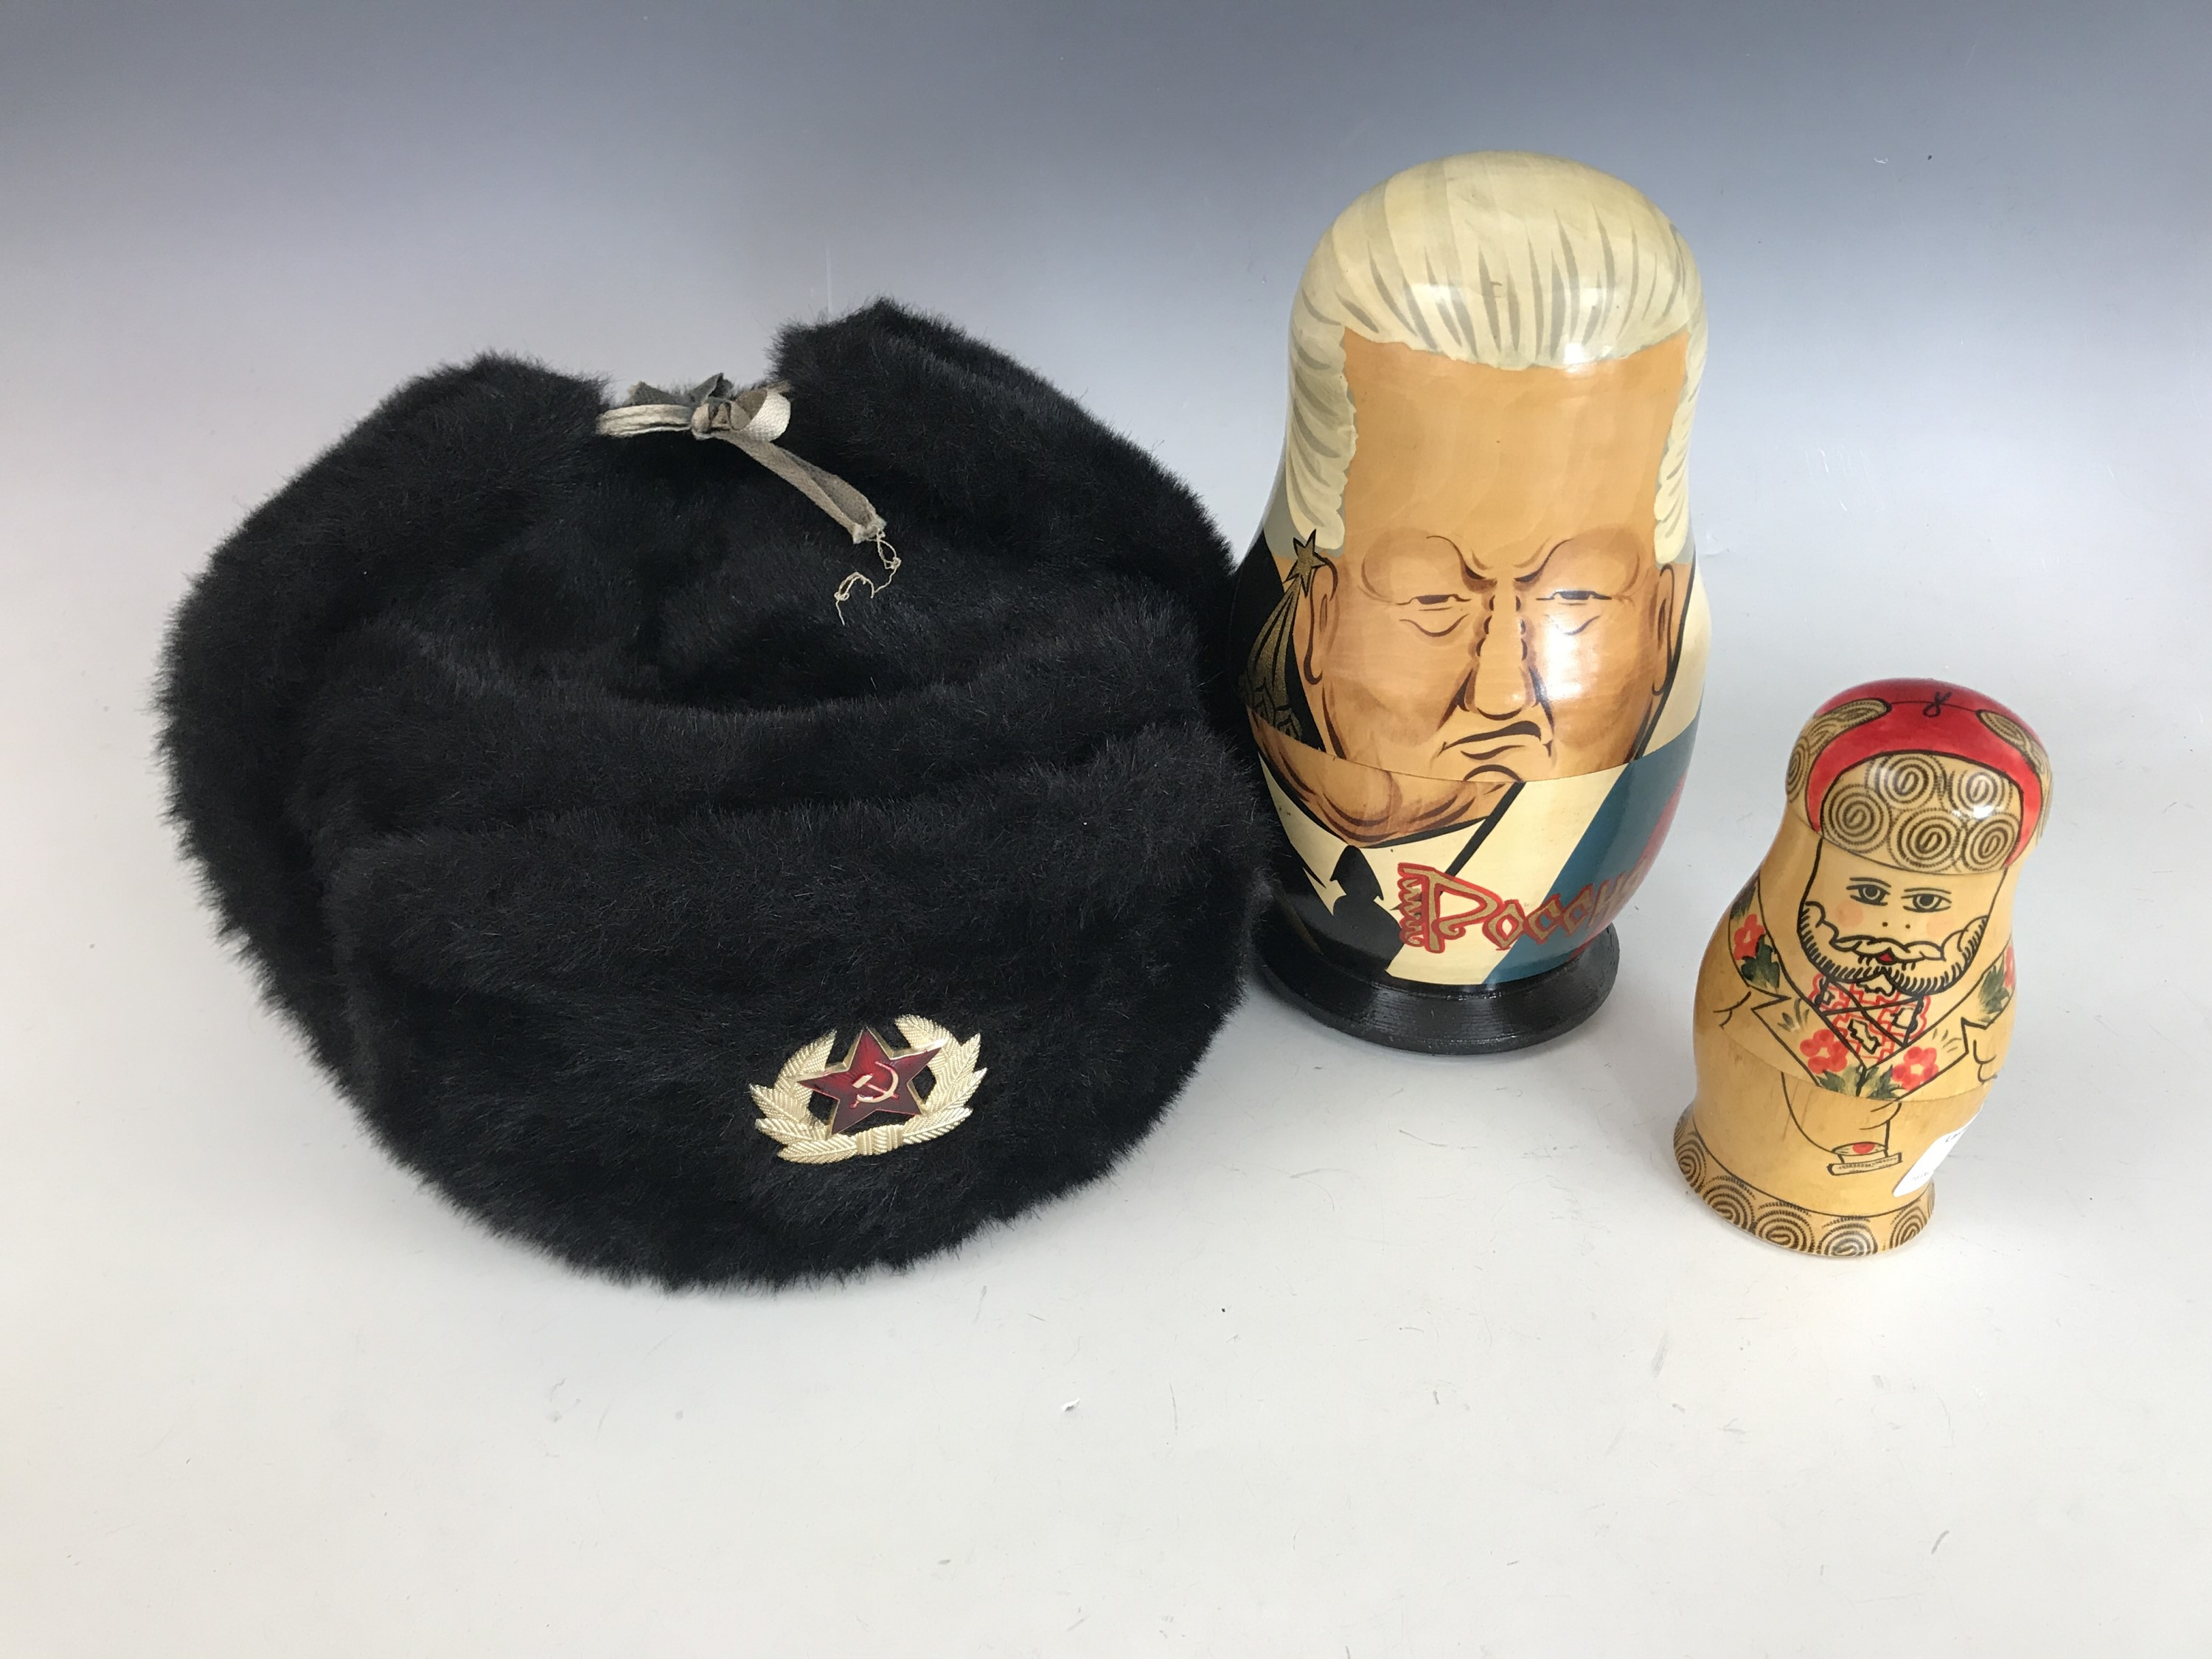 Lot 54 - A Glasnost period caricature Russian Marushka doll together with one other and a Soviet fur hat